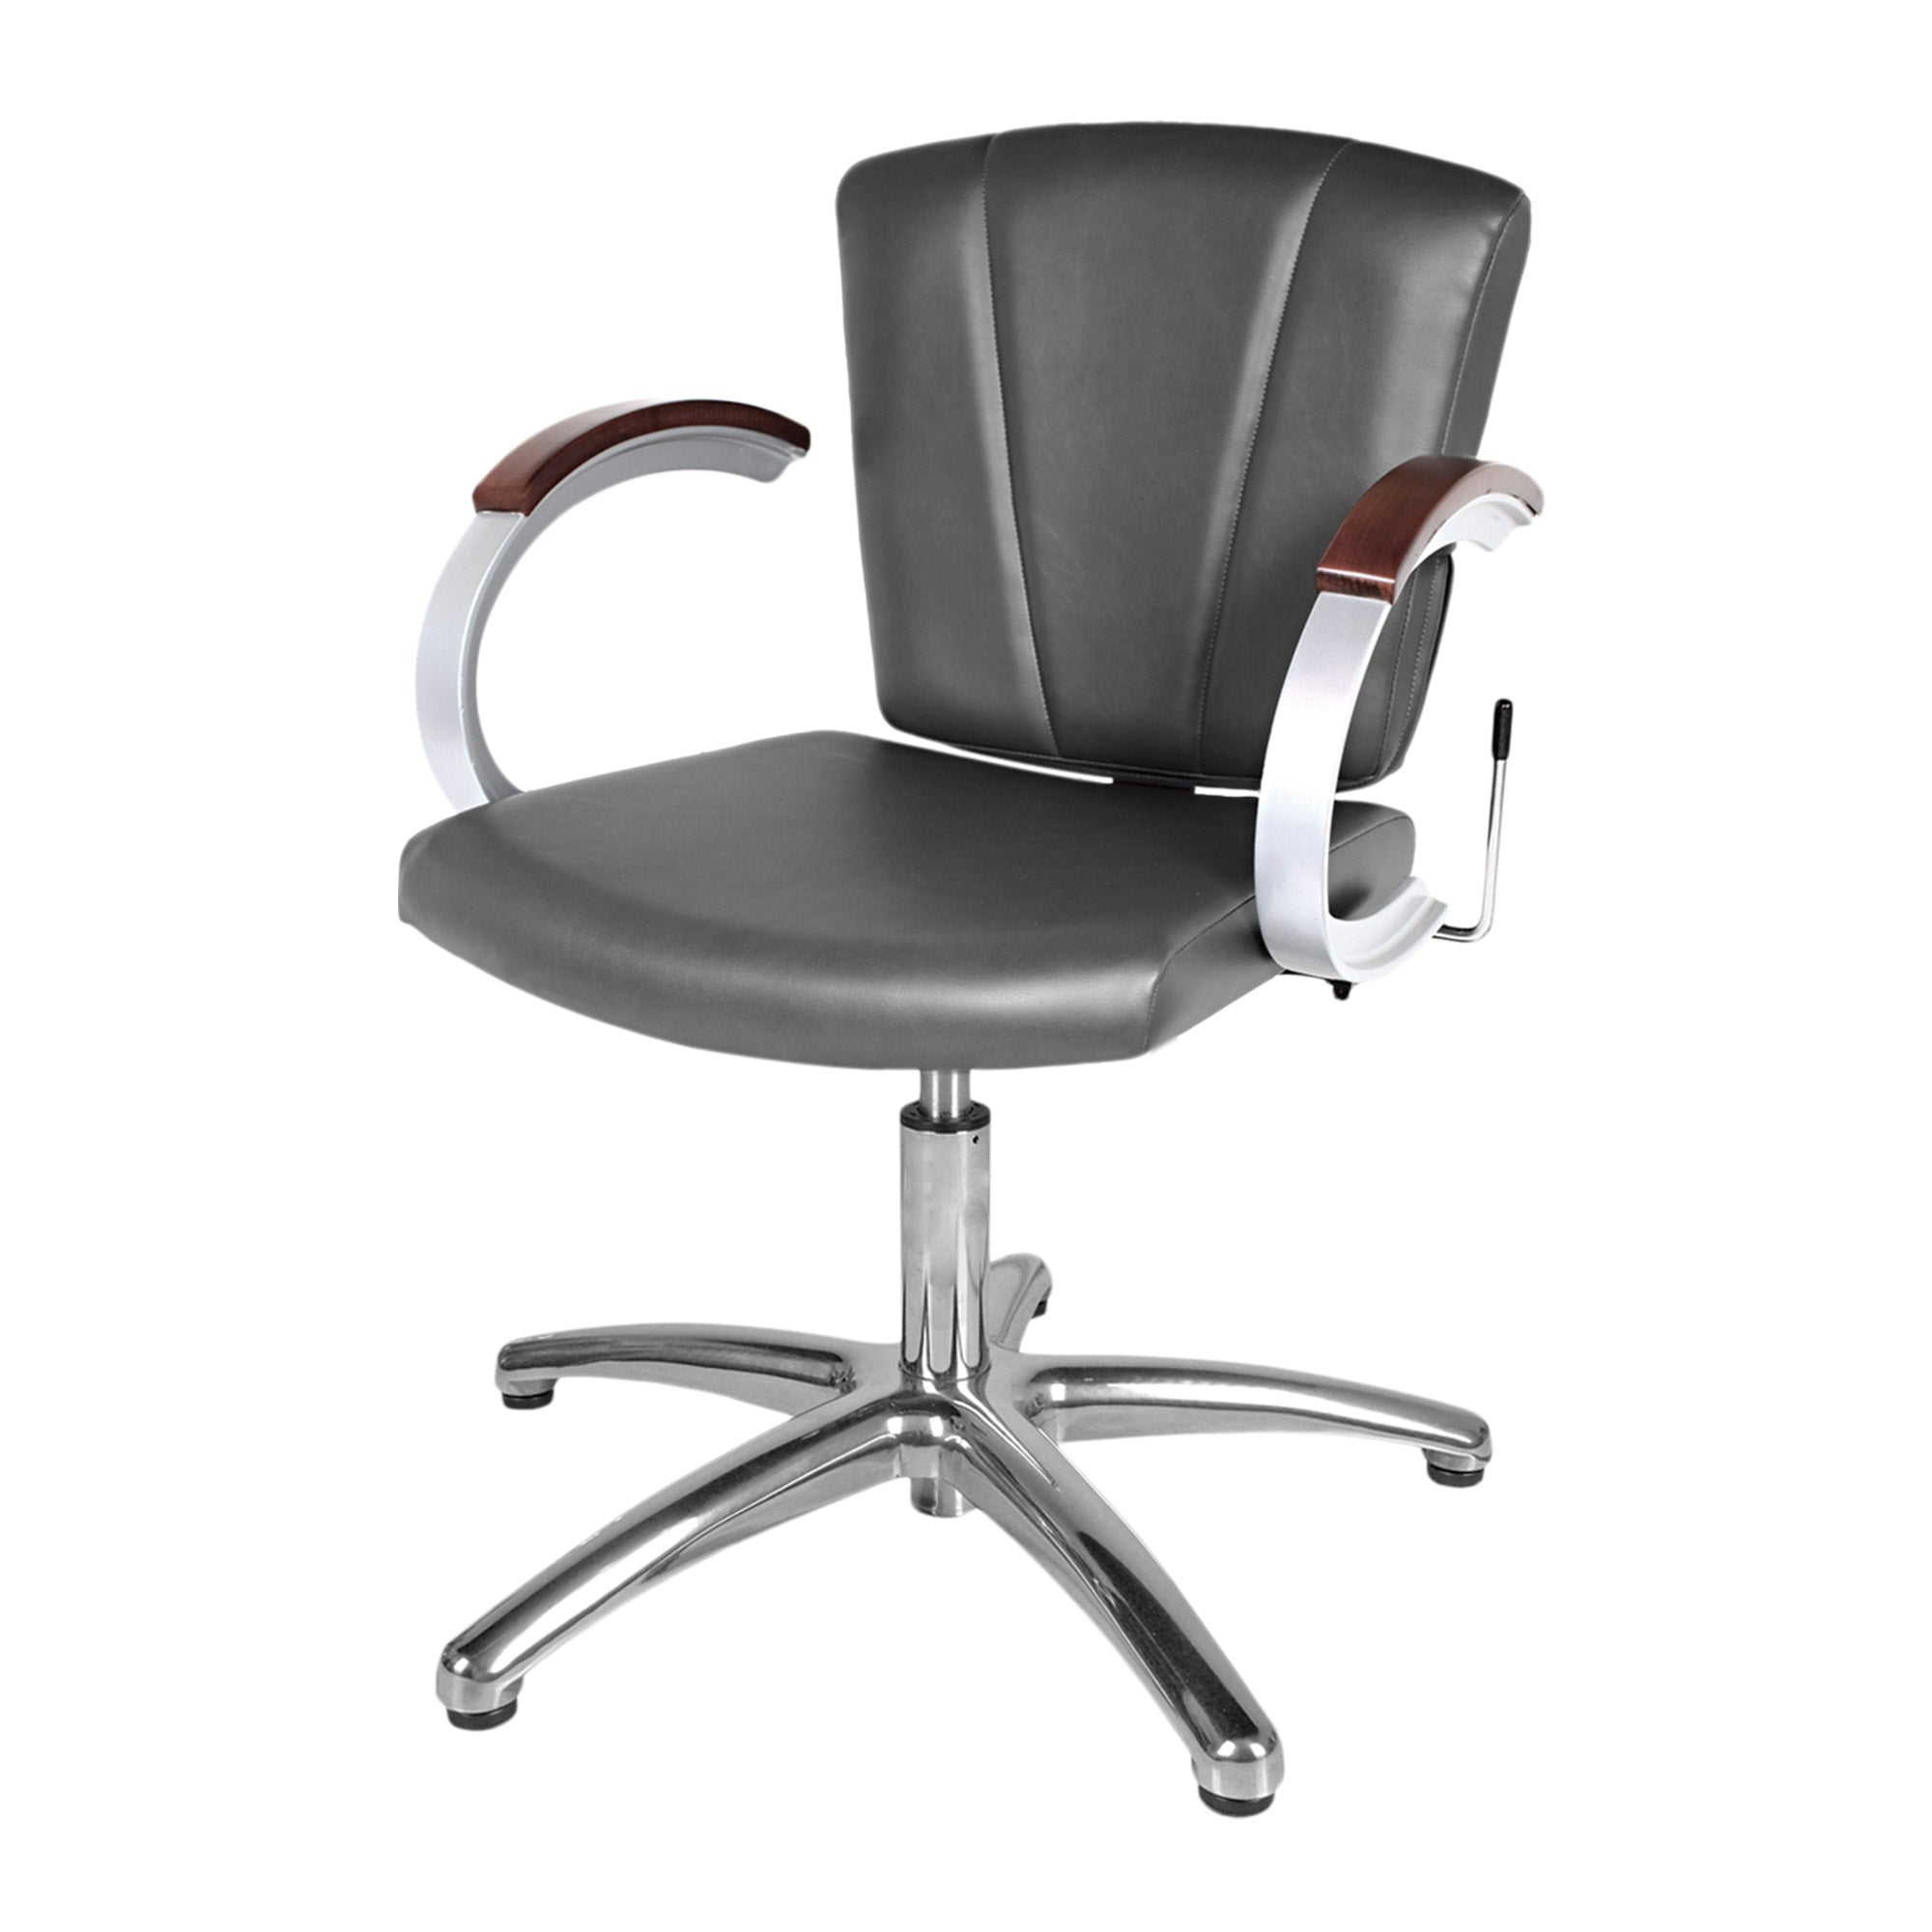 Vanelle SA Lever-Control Shampoo Chair - Collins